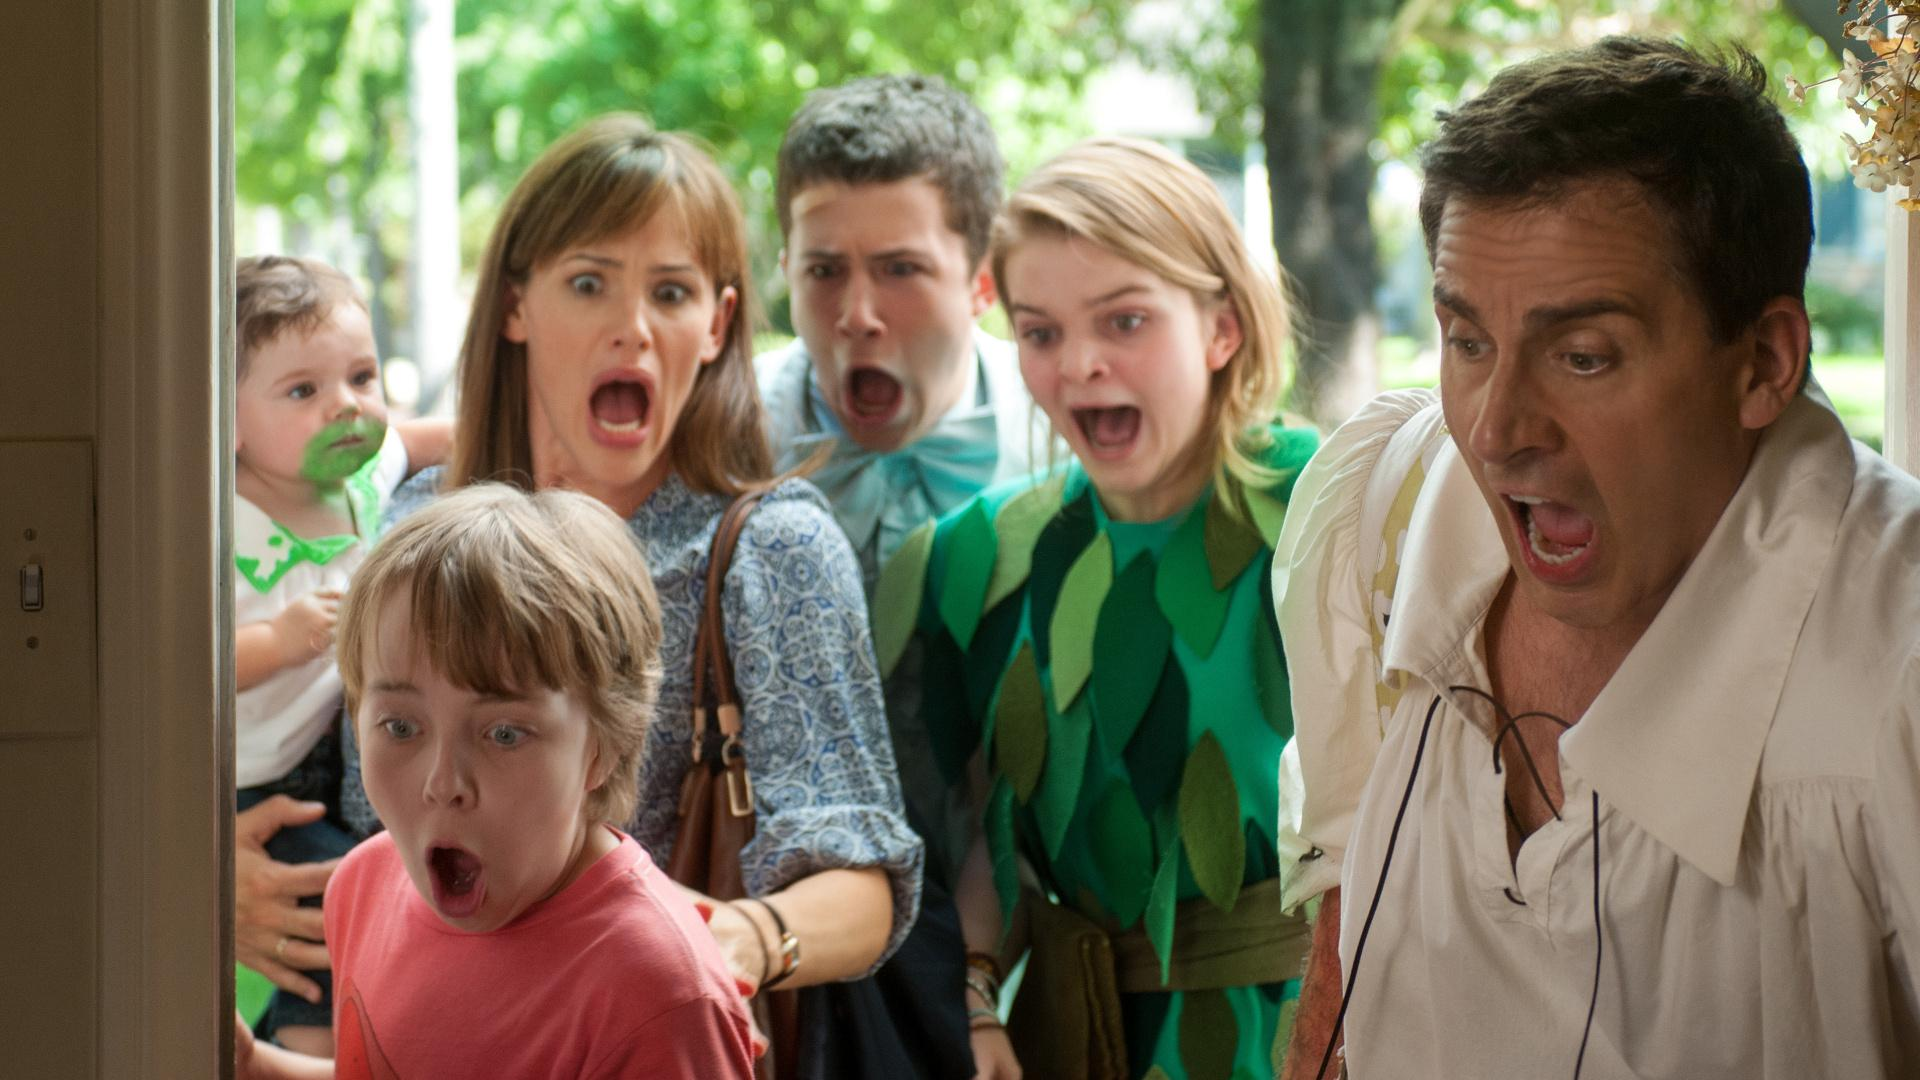 Alexander And The Terrible, Horrible, No Good, Very Bad Day wallpapers HD quality